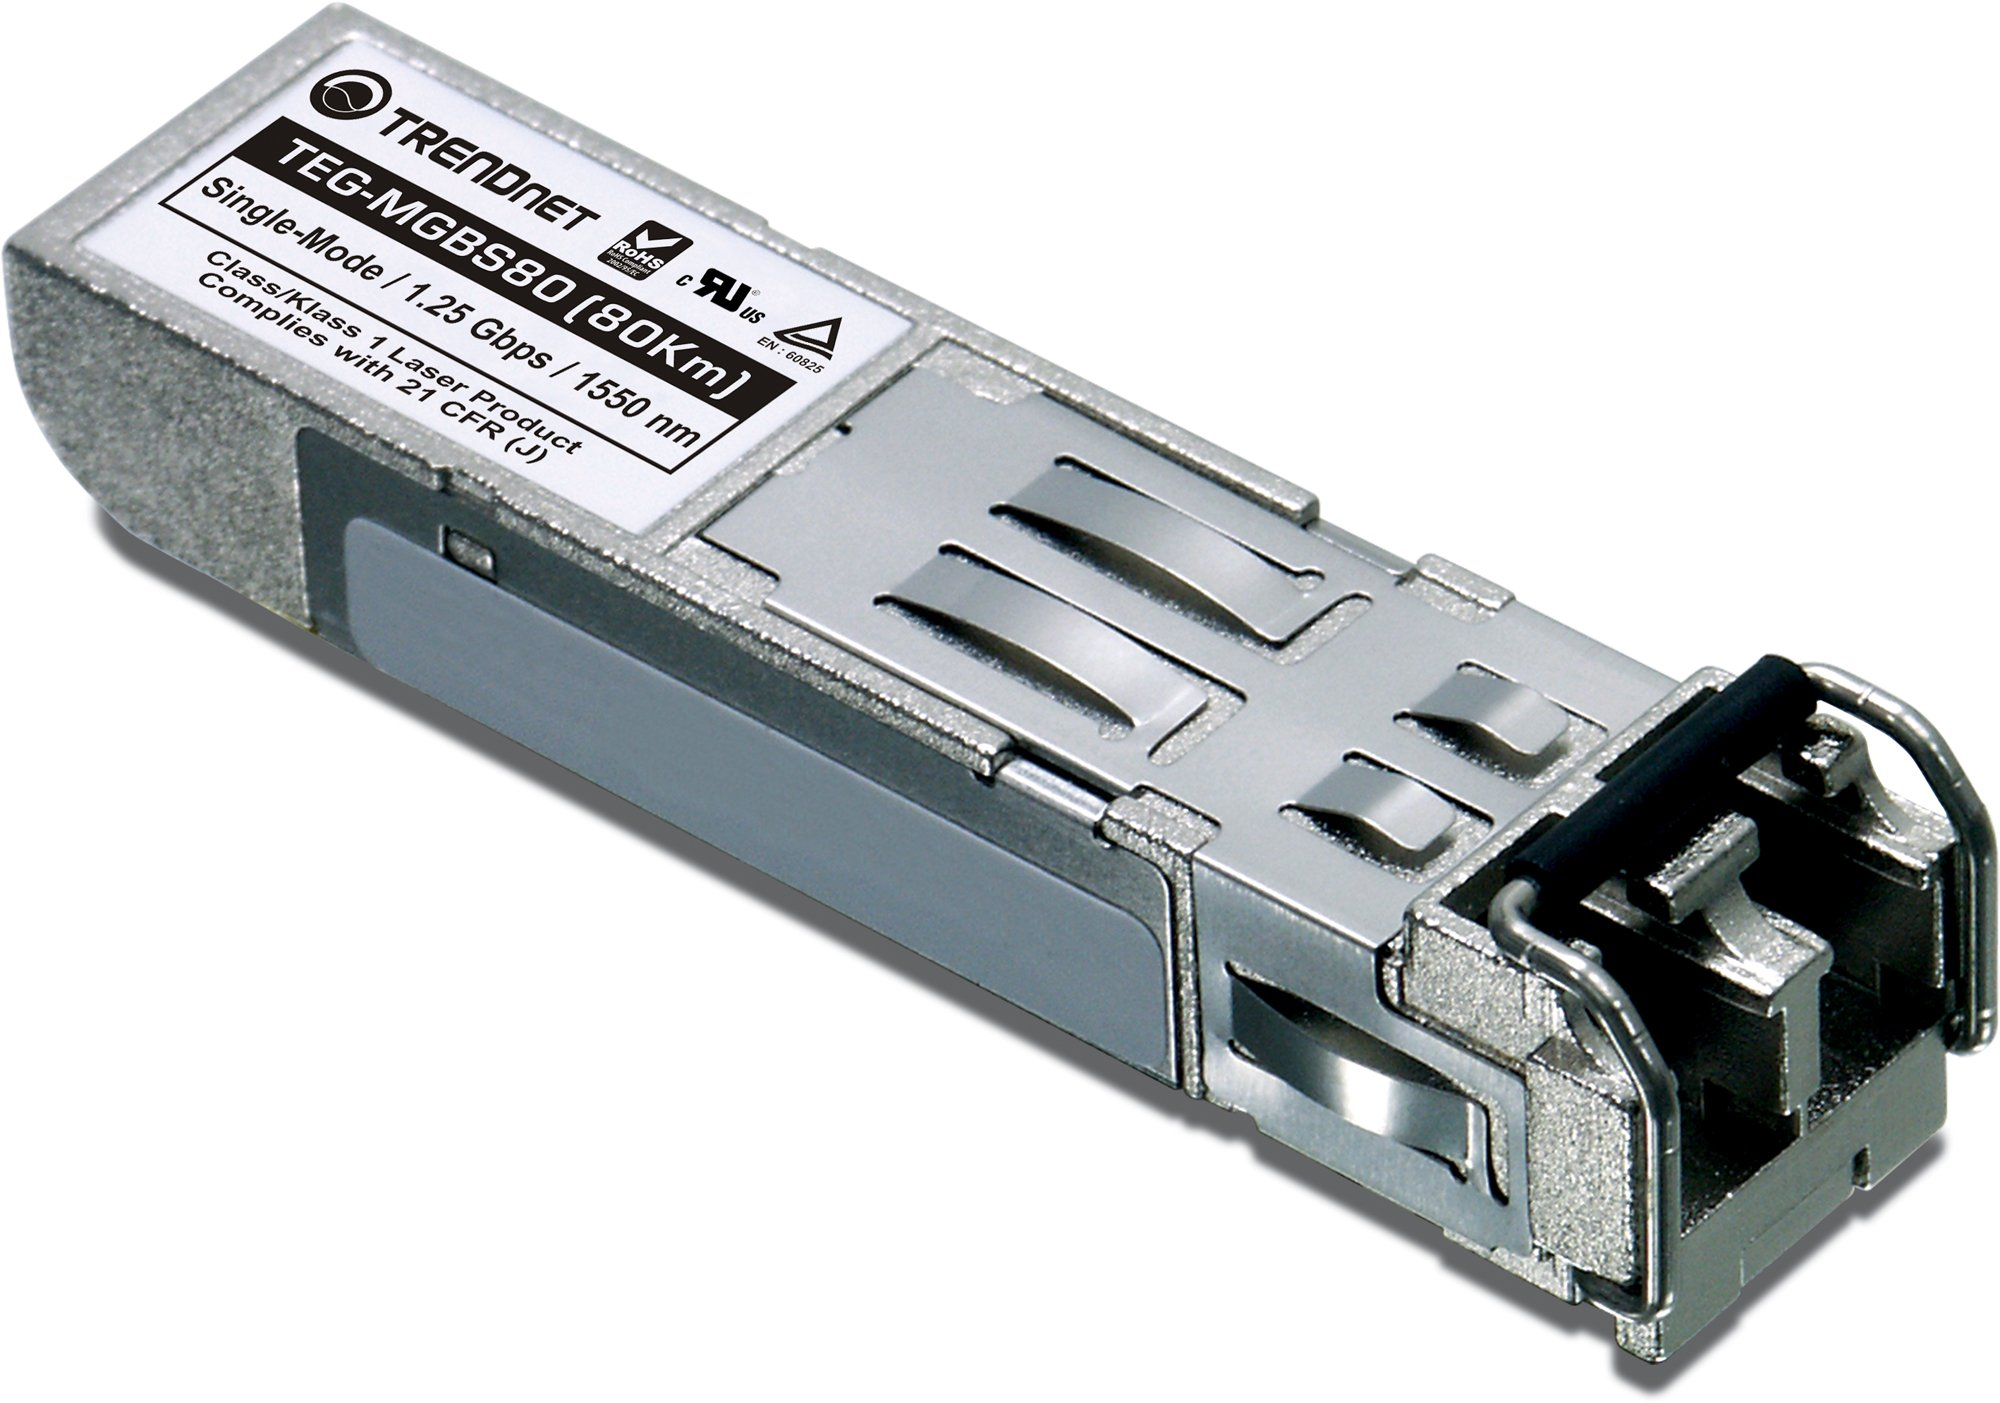 TRENDnet Mini-GBIC Single-Mode LC Module, Connect with a standard Mini-GBIC Slot, Up to 80 Km (49.7 Miles), TEG-MGBS80 by TRENDnet